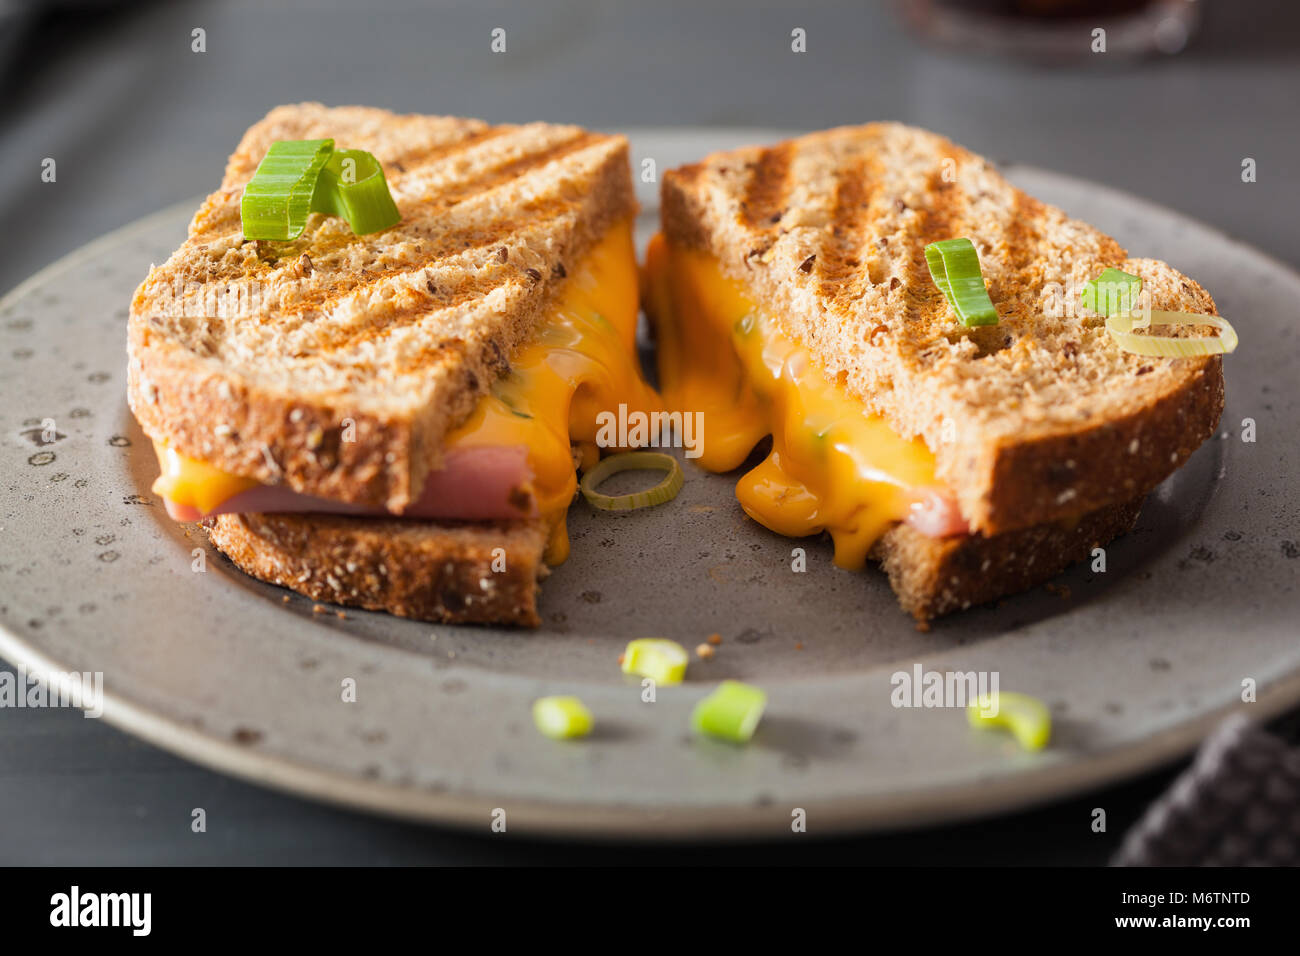 grilled ham and cheese sandwich - Stock Image